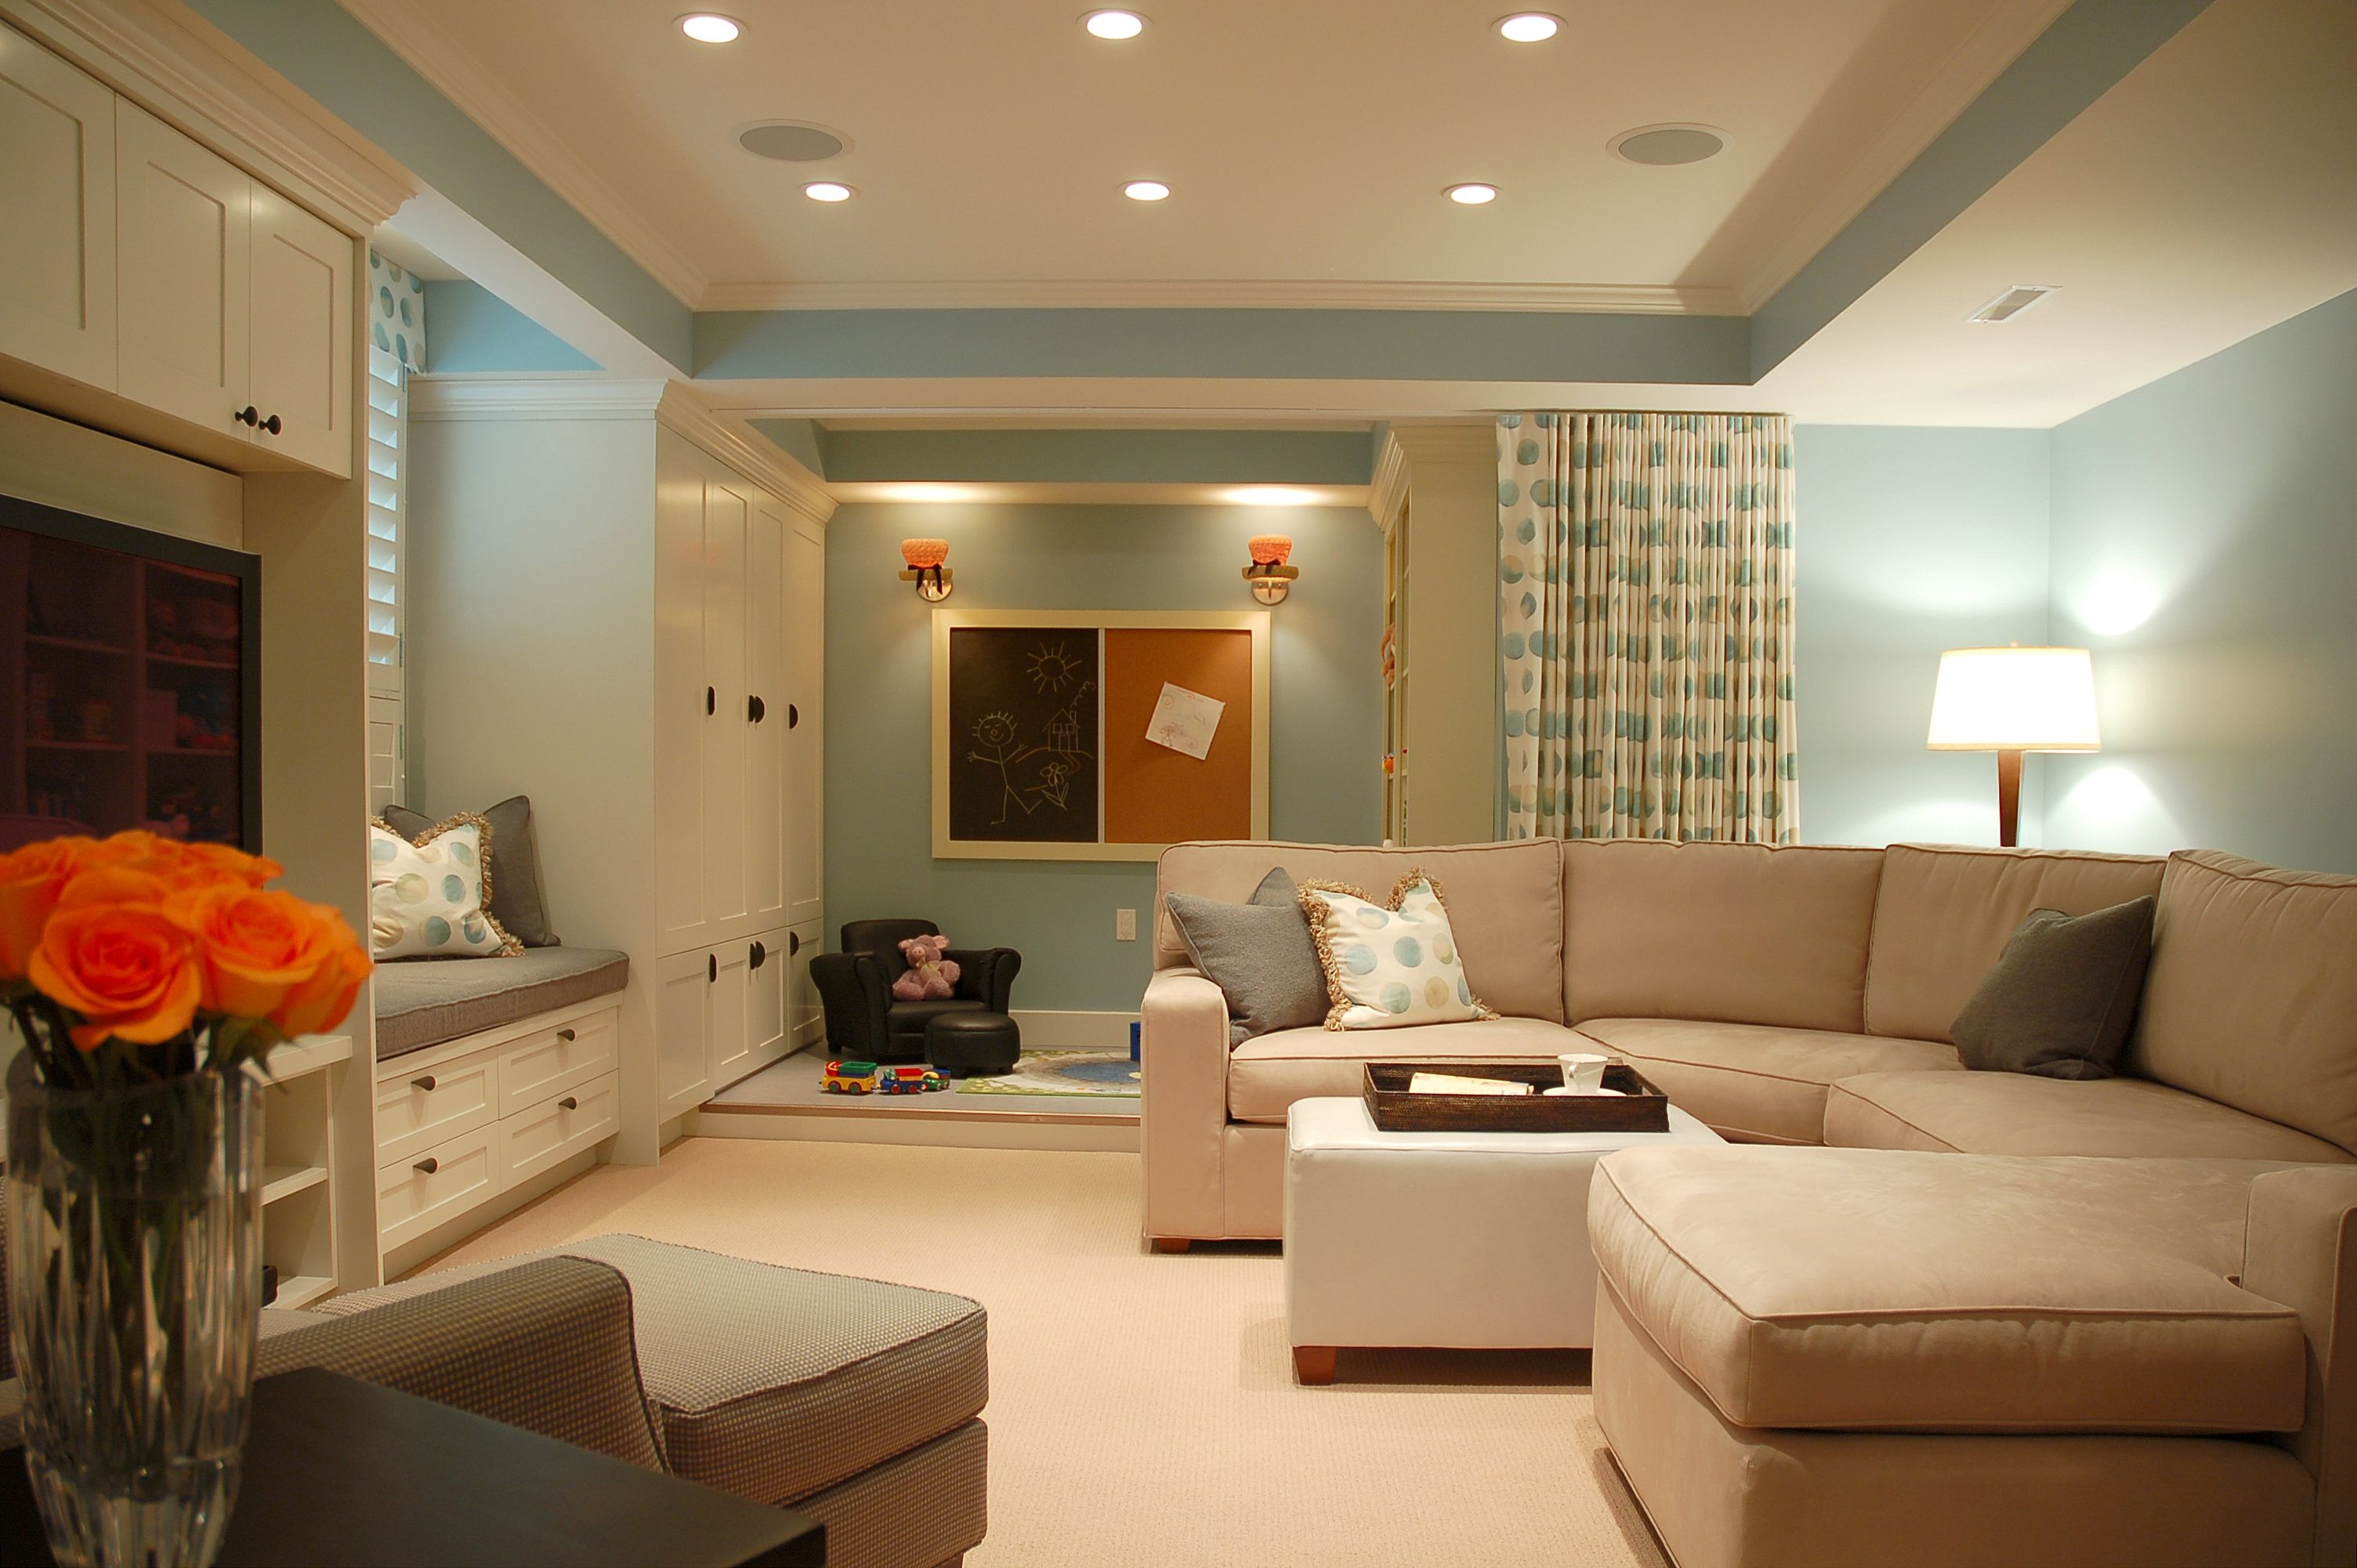 Room. 27 Awesome Home Media Room Ideas   Design Amazing Pictures   Wall